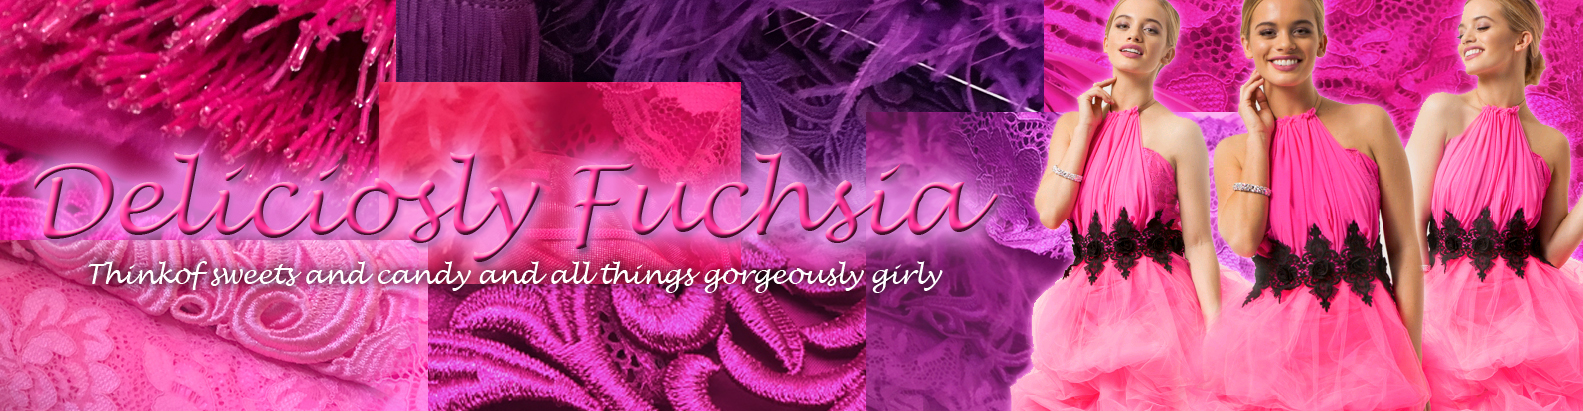 Deliciously Fuchsia